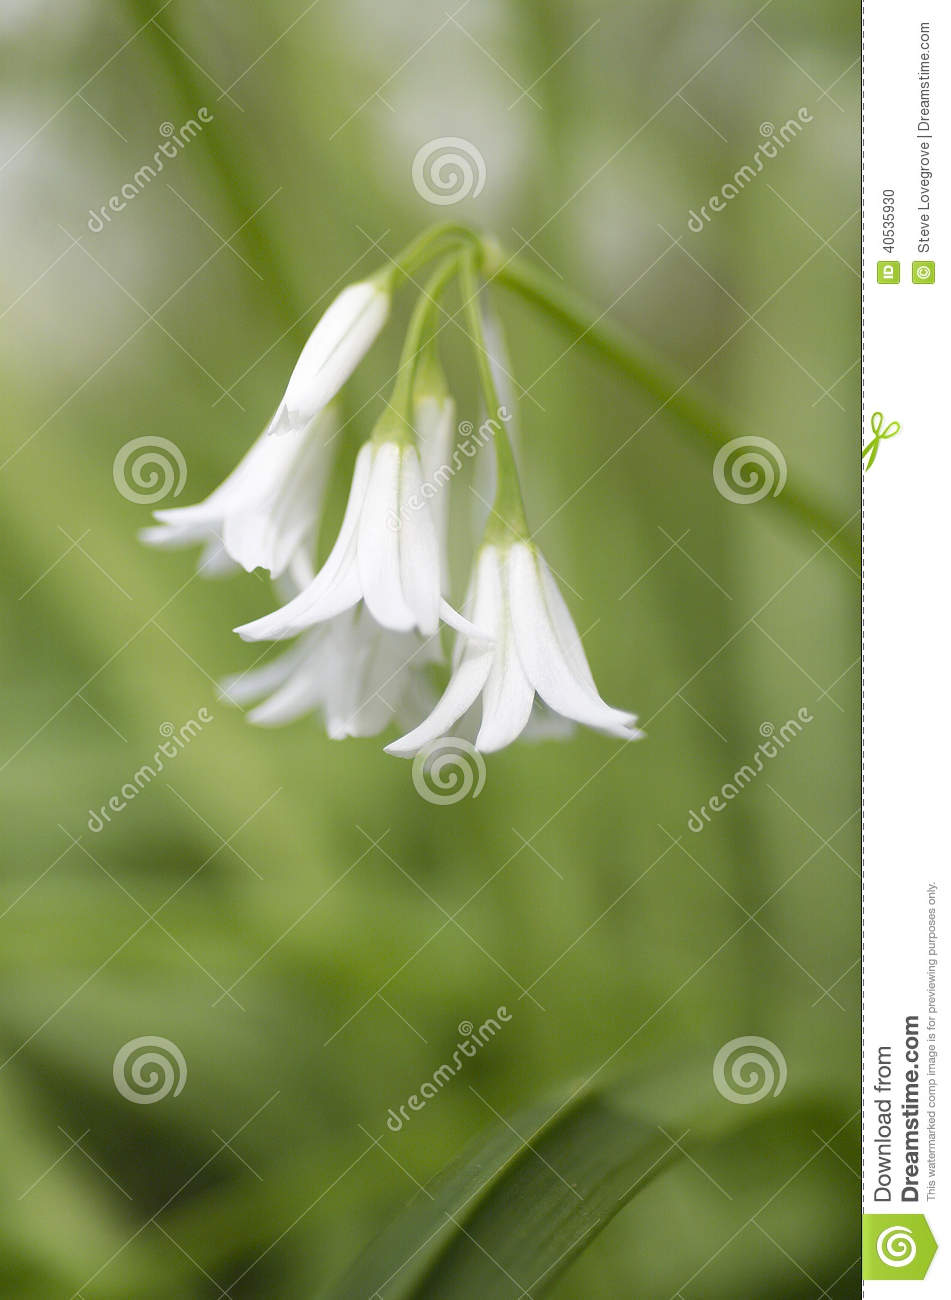 White flower stock photo image of wildflower garden 40535930 download white flower stock photo image of wildflower garden 40535930 mightylinksfo